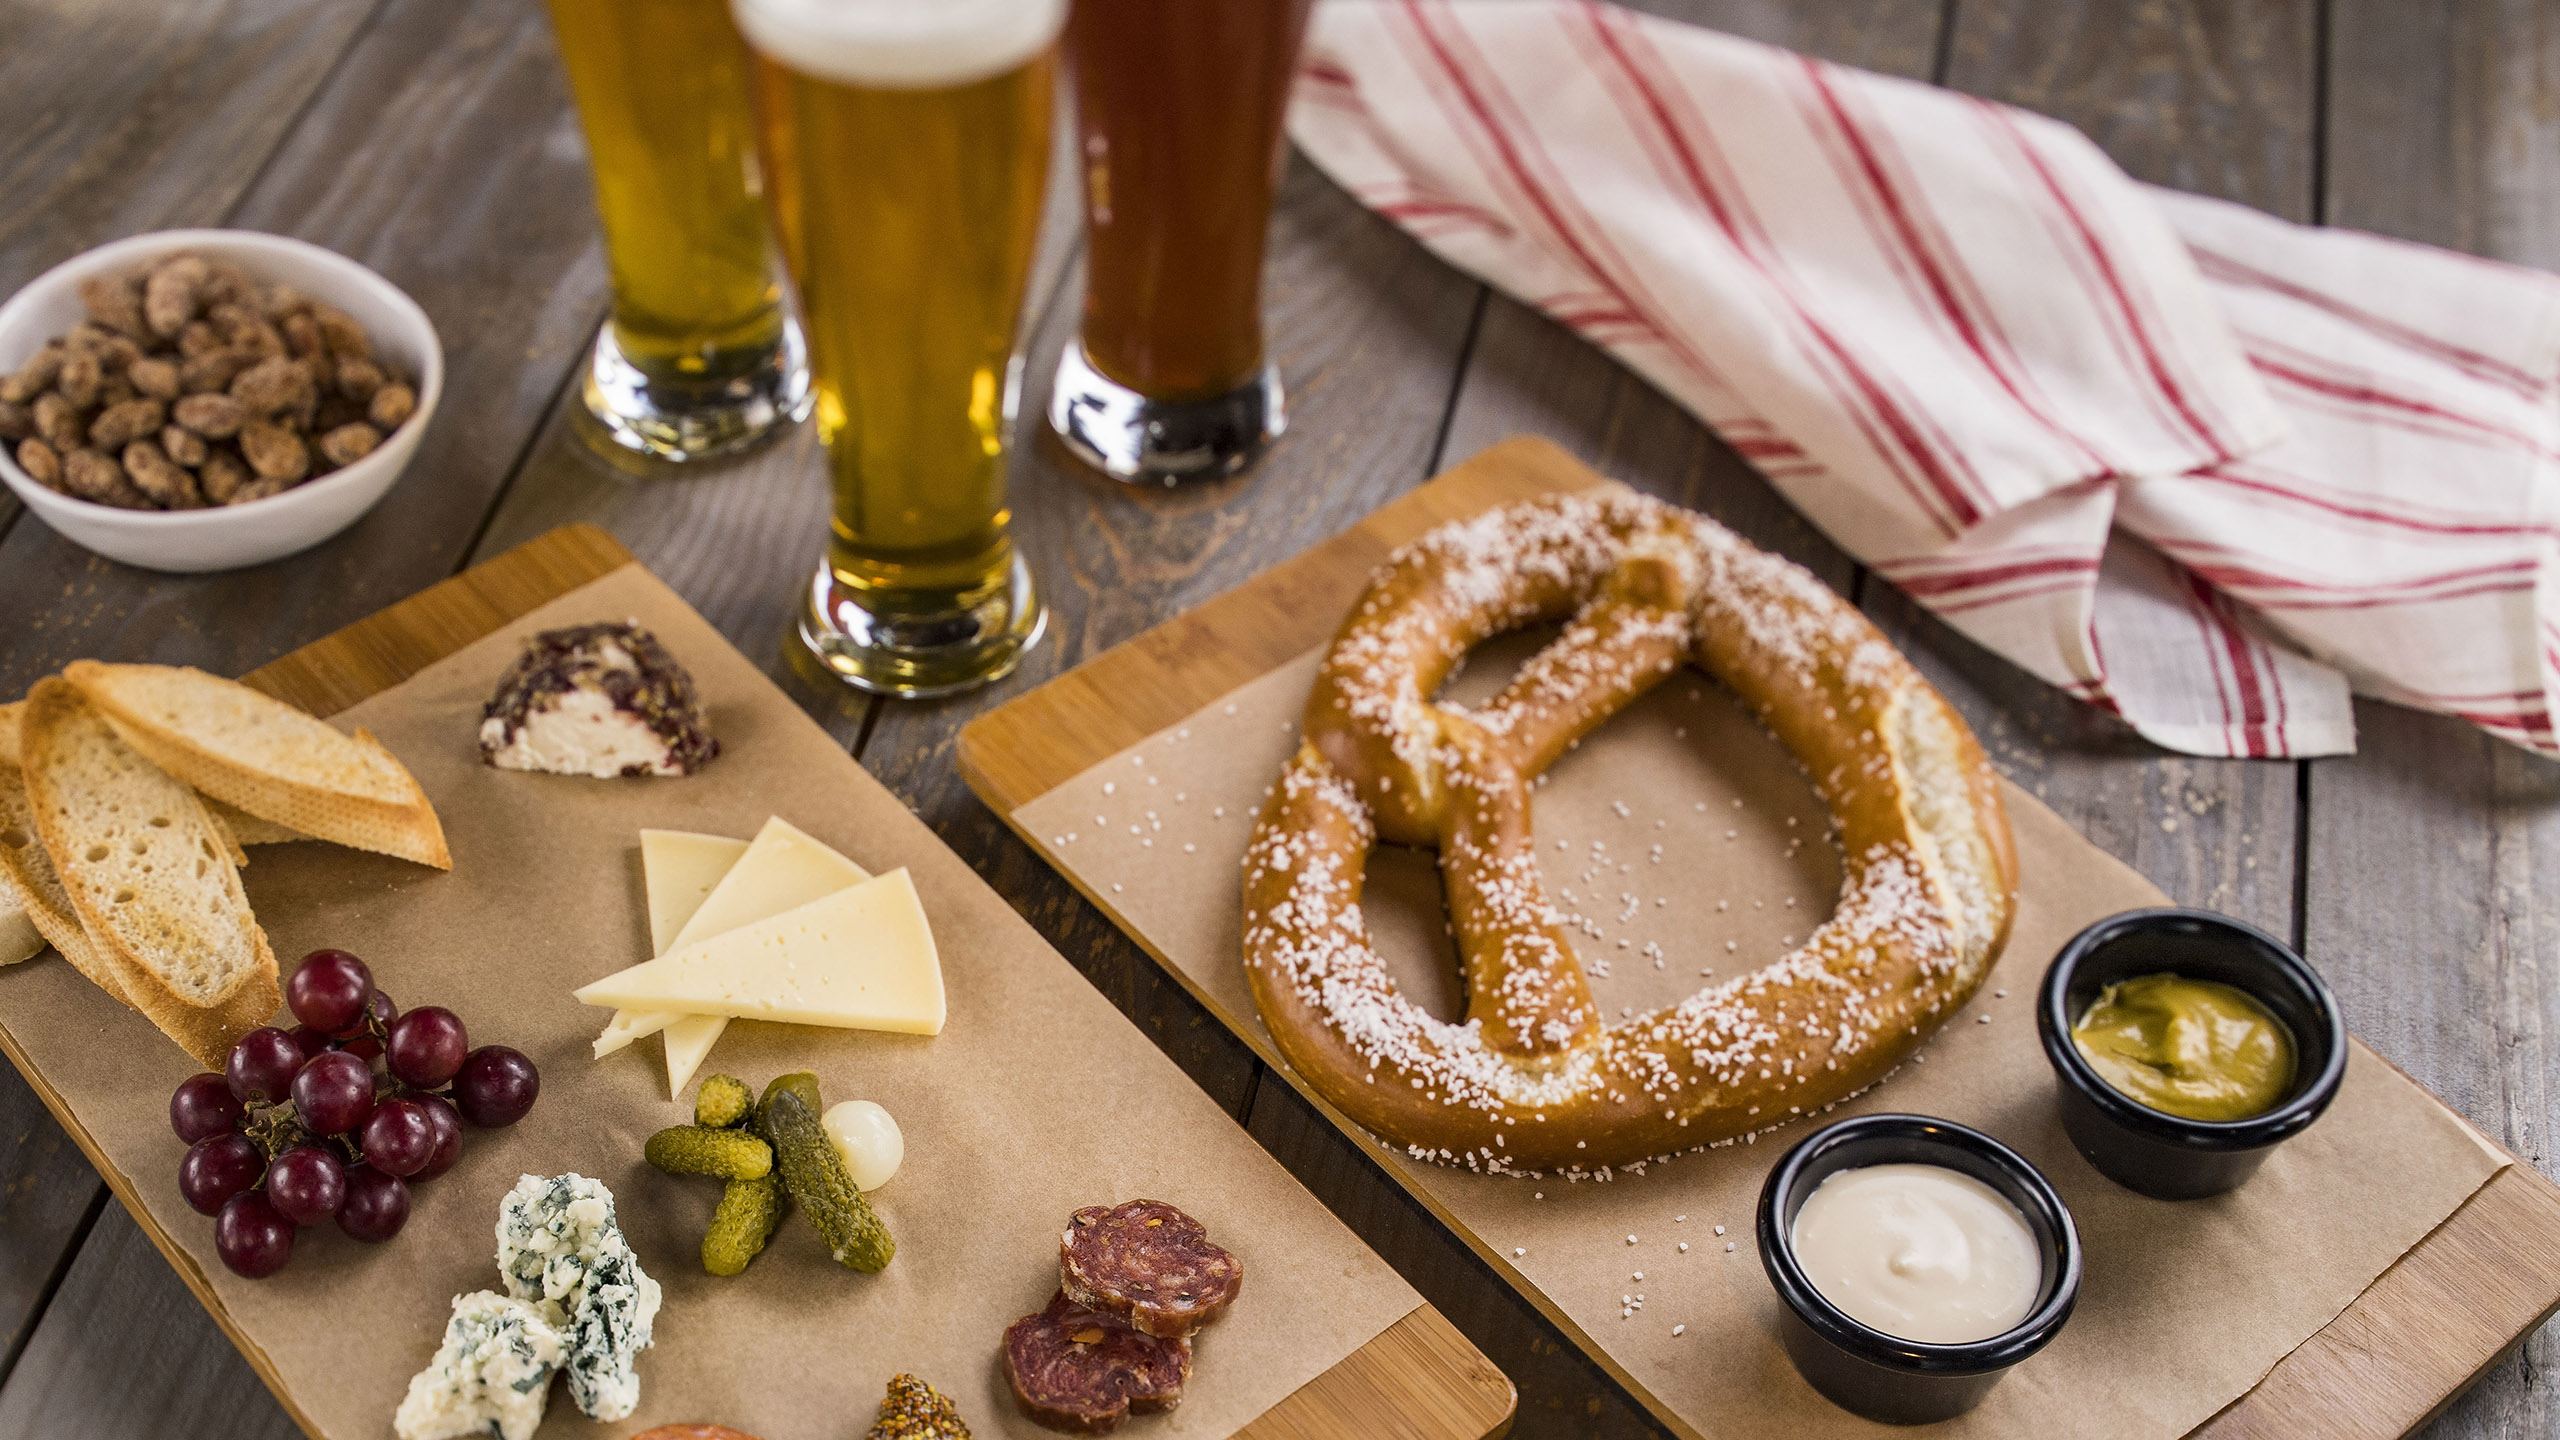 California Cheese and Charcuterie Plate and the Bavarian Pretzel with beer-cheese Fondue and Spicy Mustard